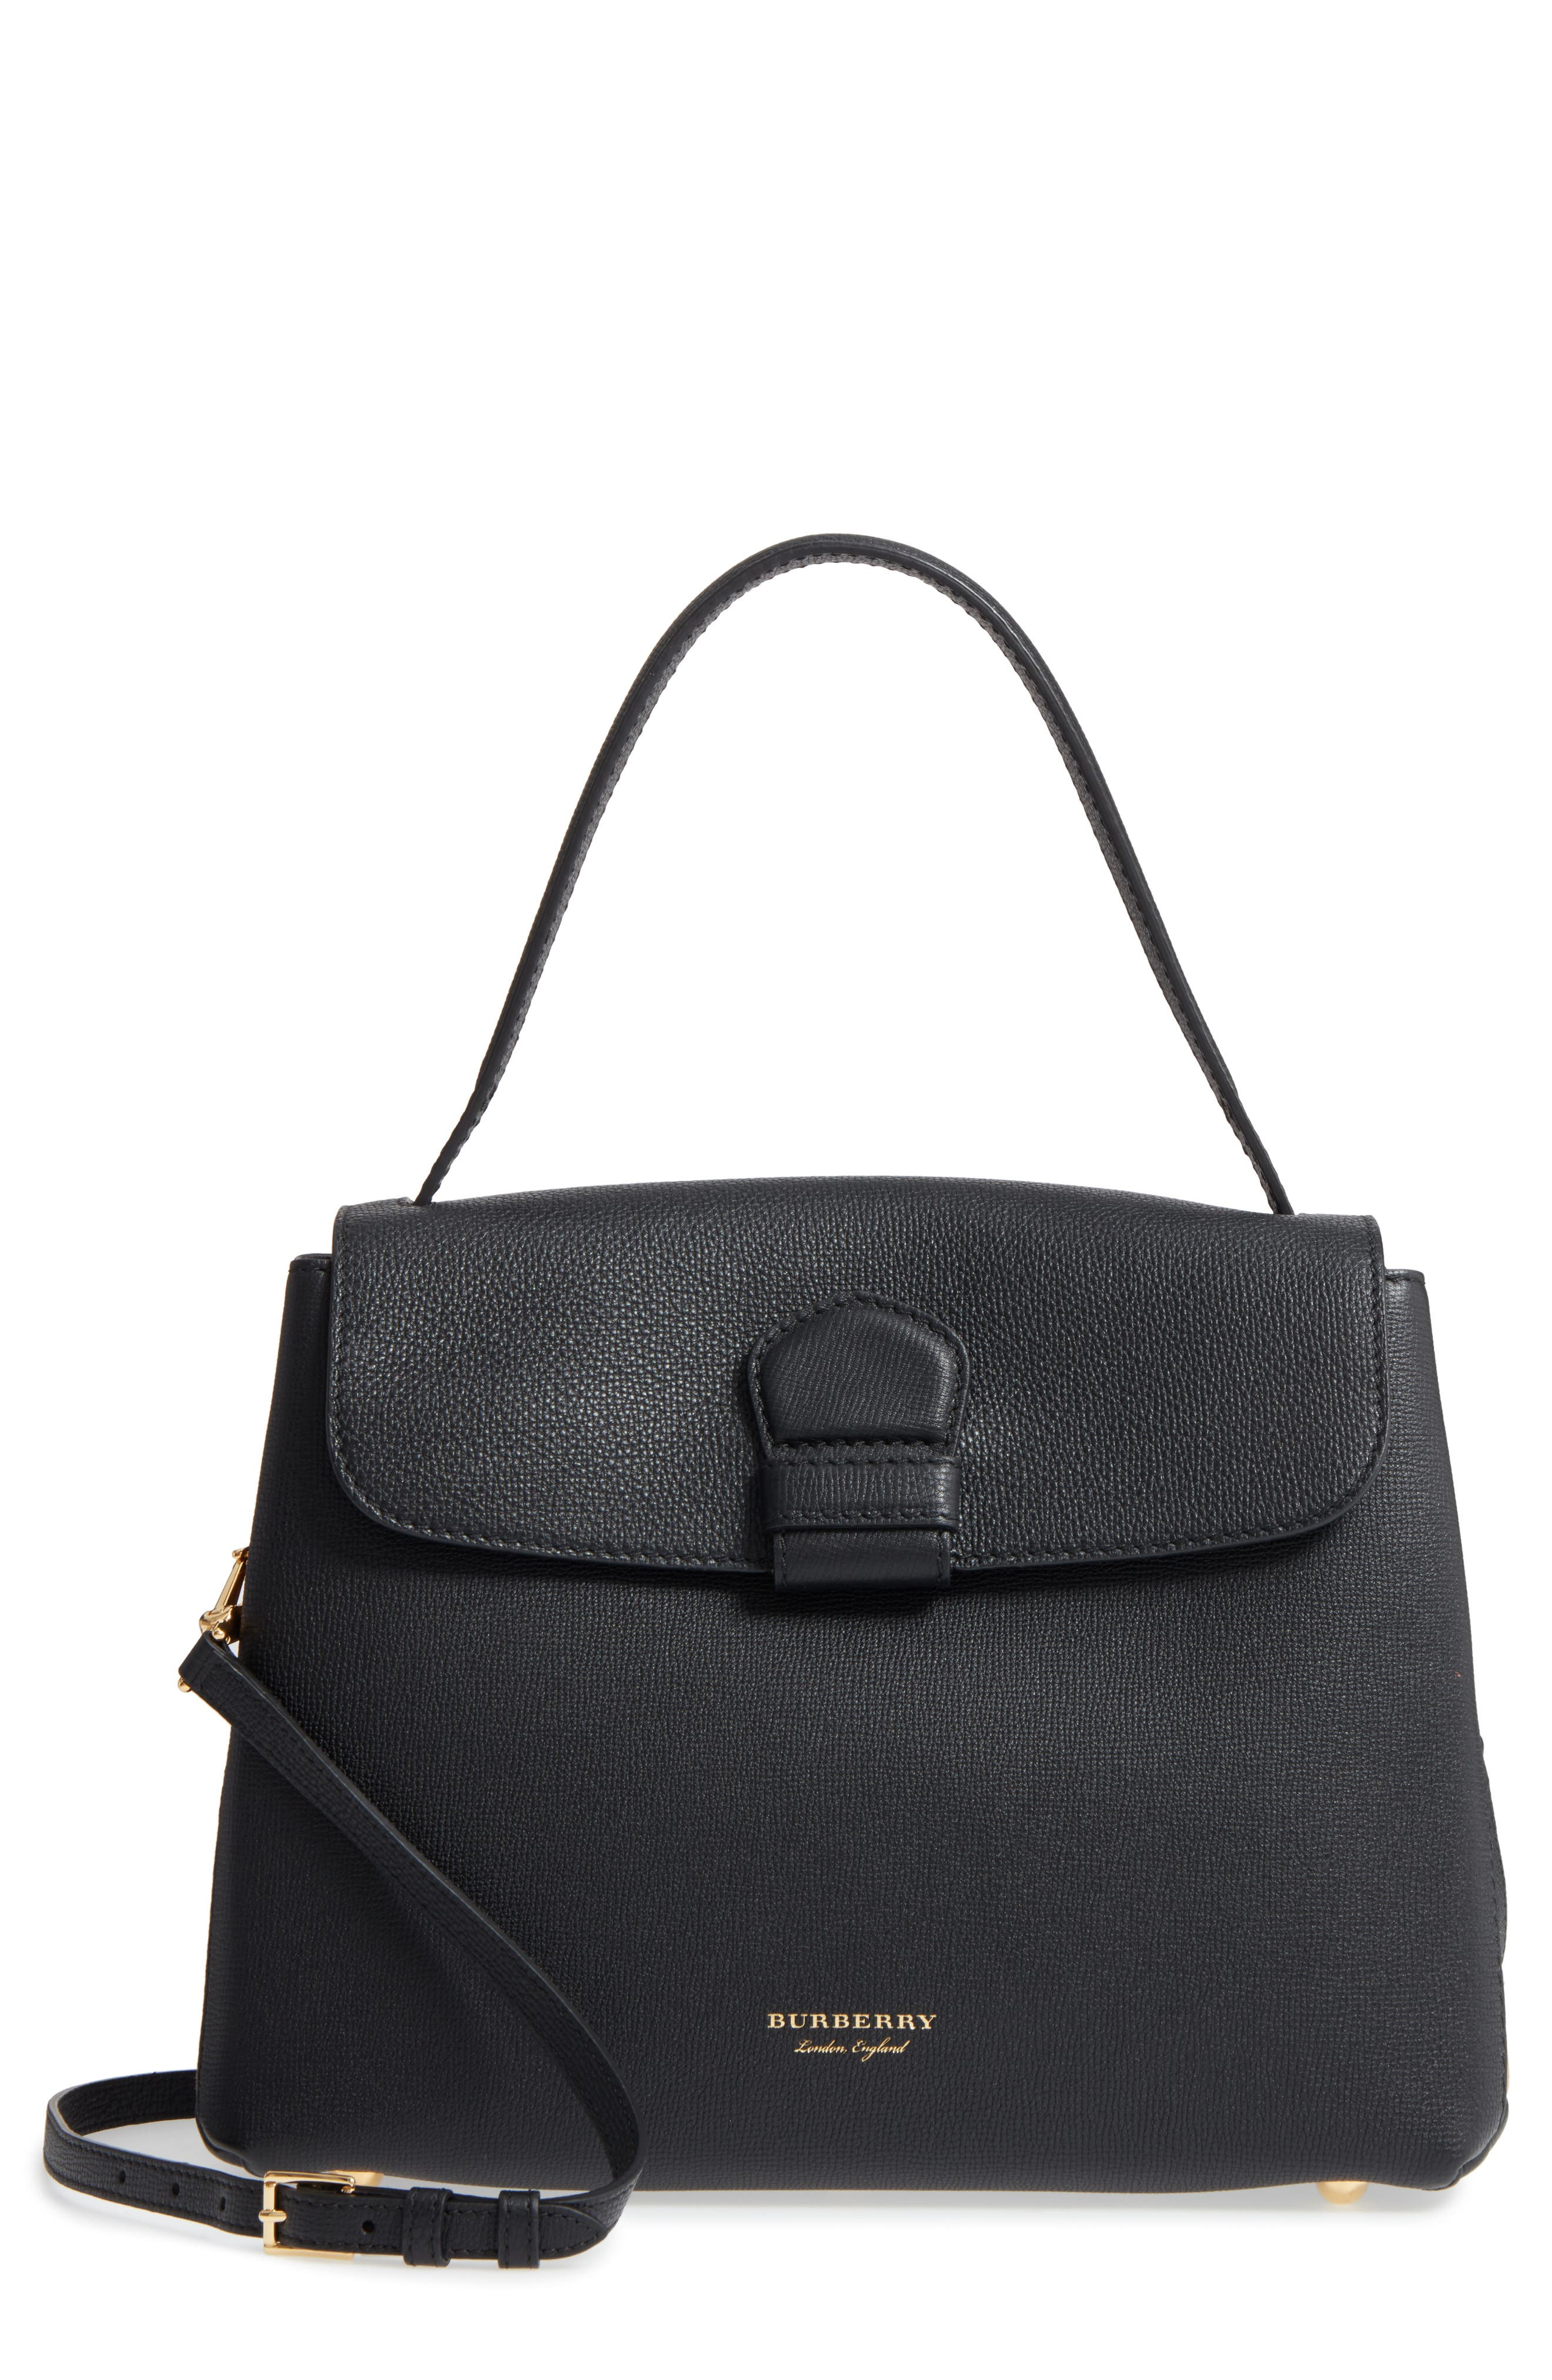 Medium Camberley Leather & House Check Top Handle Satchel,                             Main thumbnail 1, color,                             Black